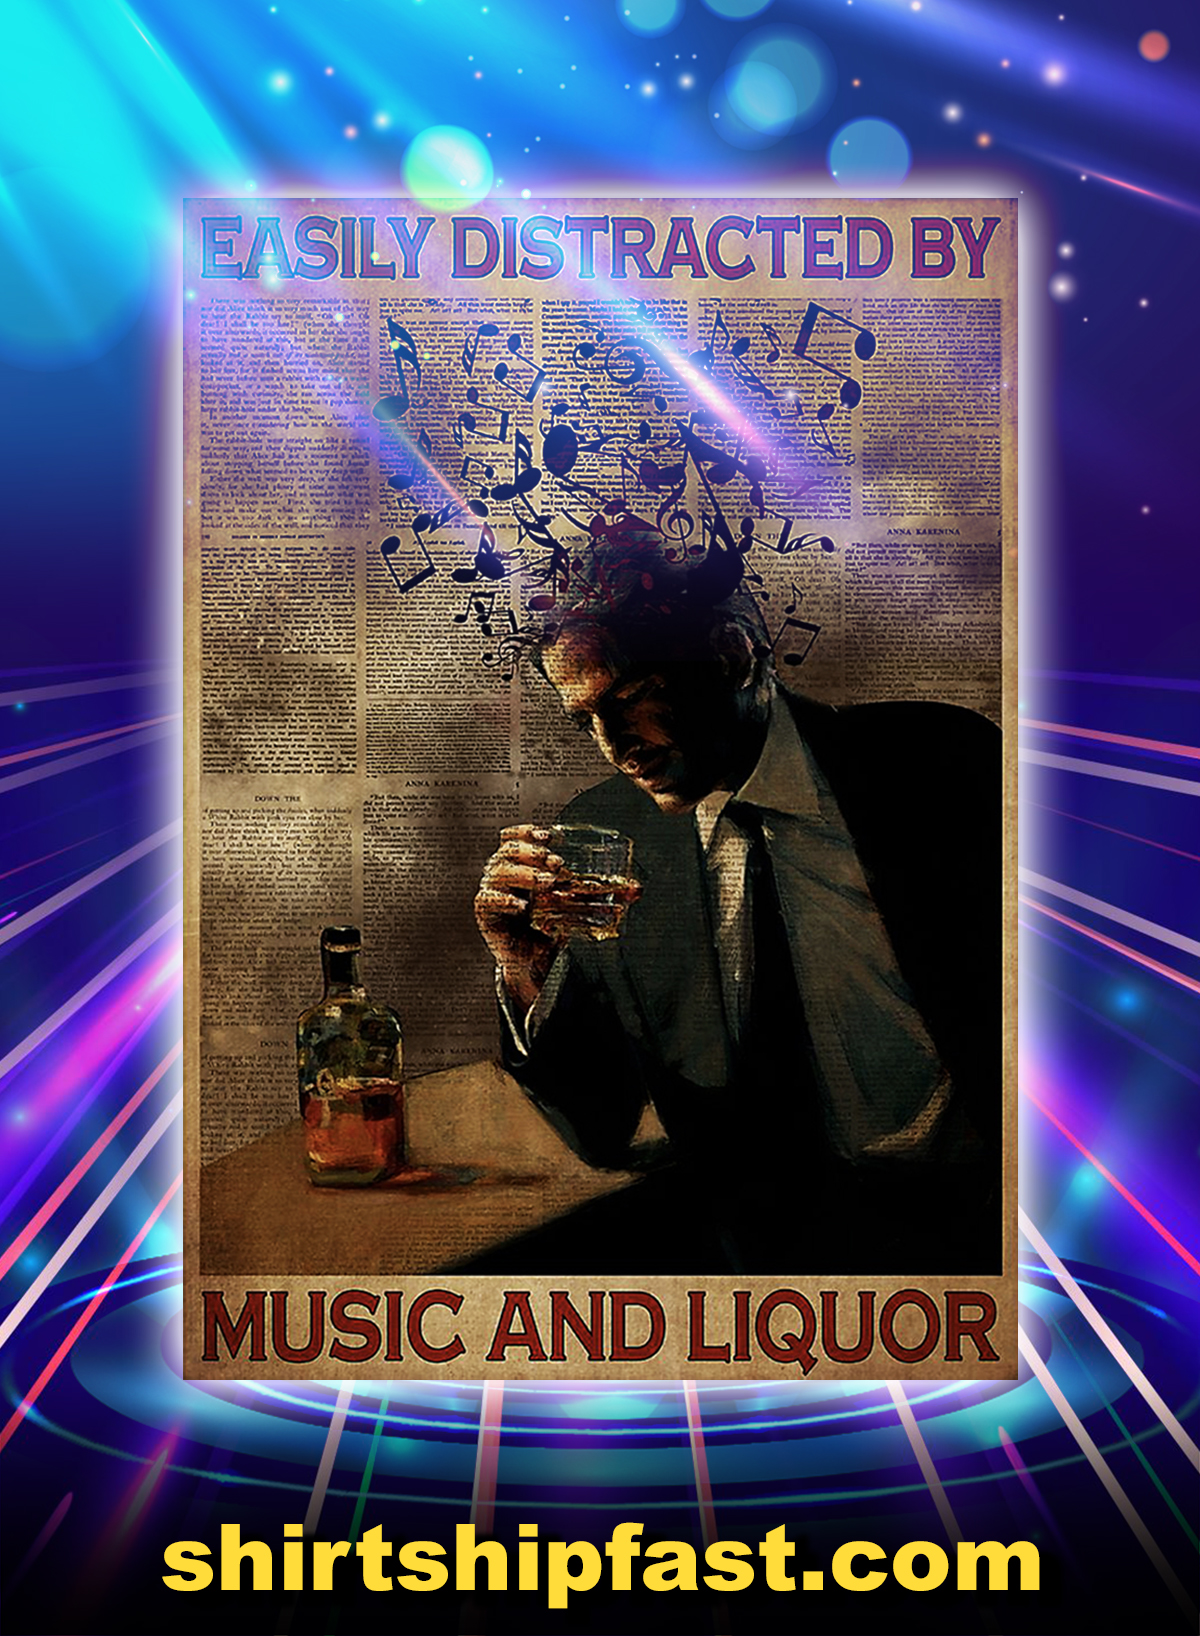 Man easily distracted by music and liquor poster - A1